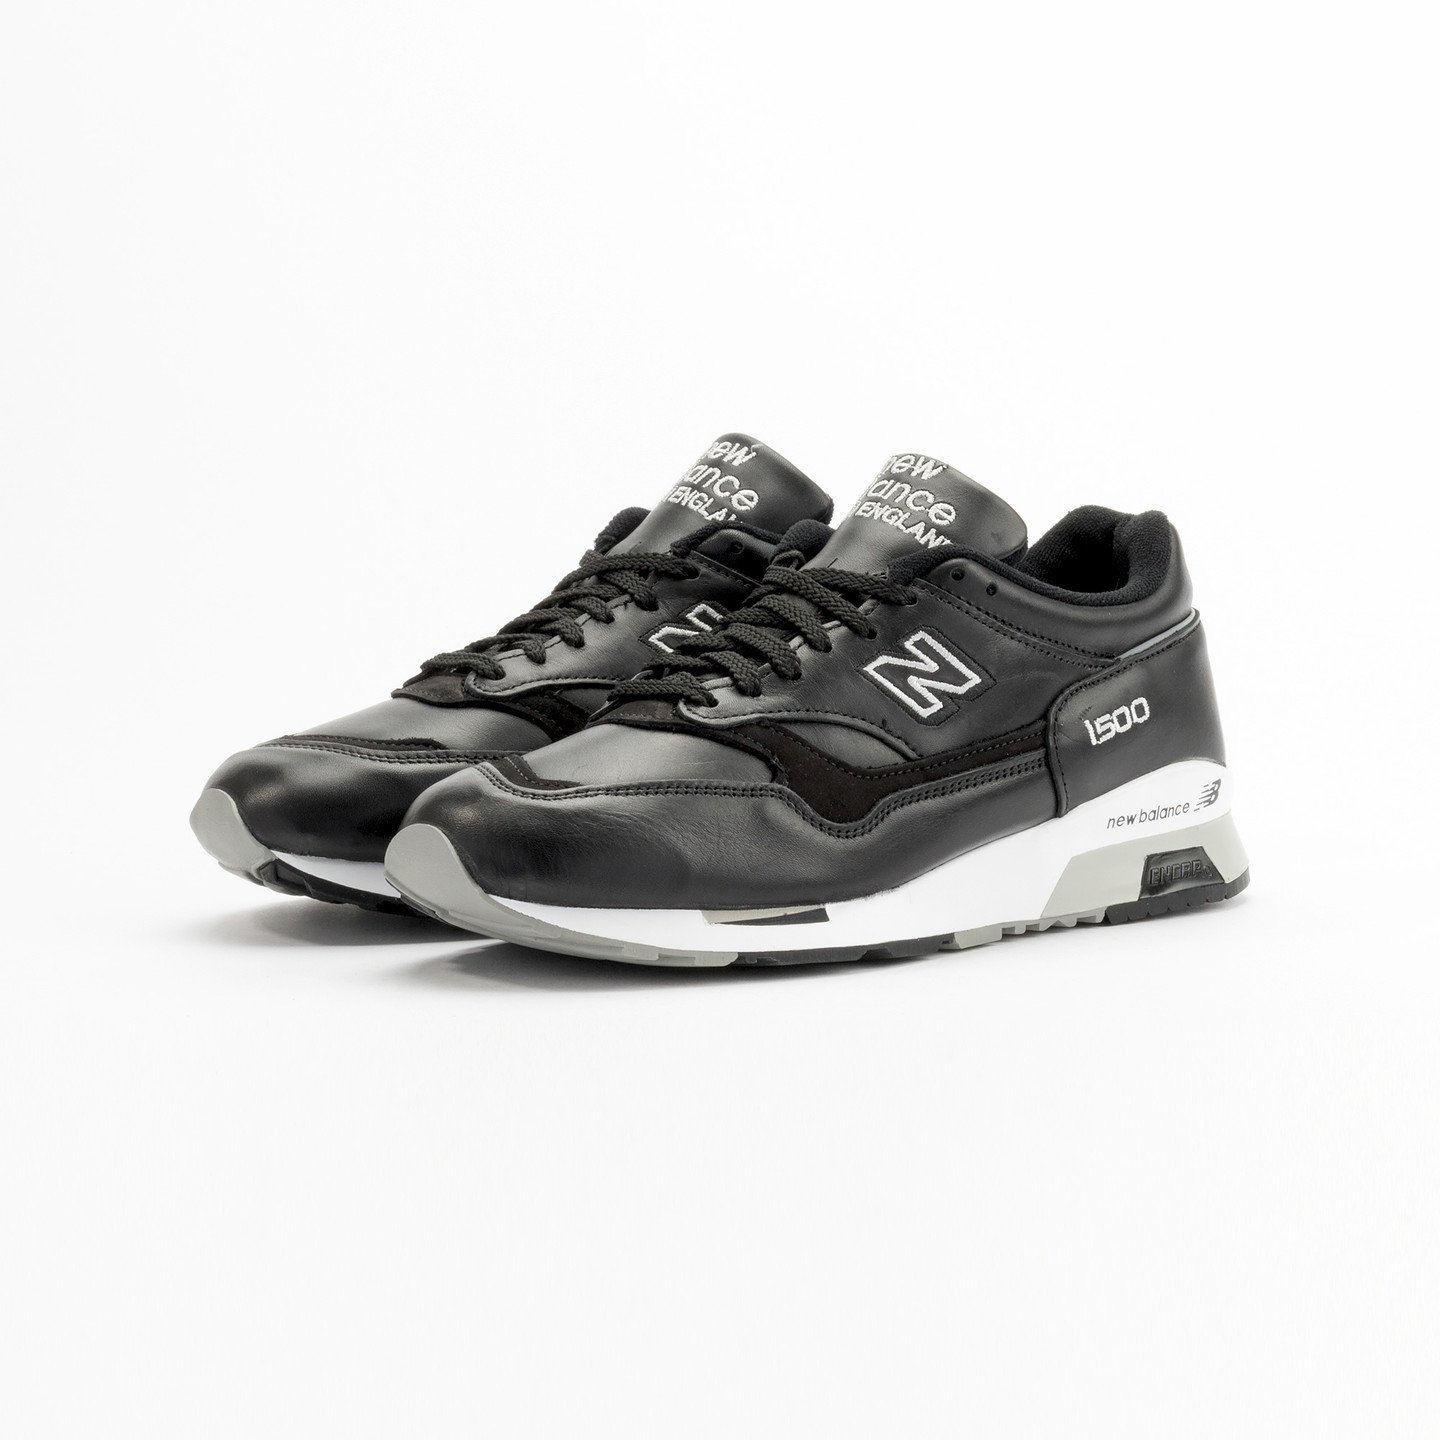 New Balance M1500 BK - Made in England Black / White Shadow M1500BK-42